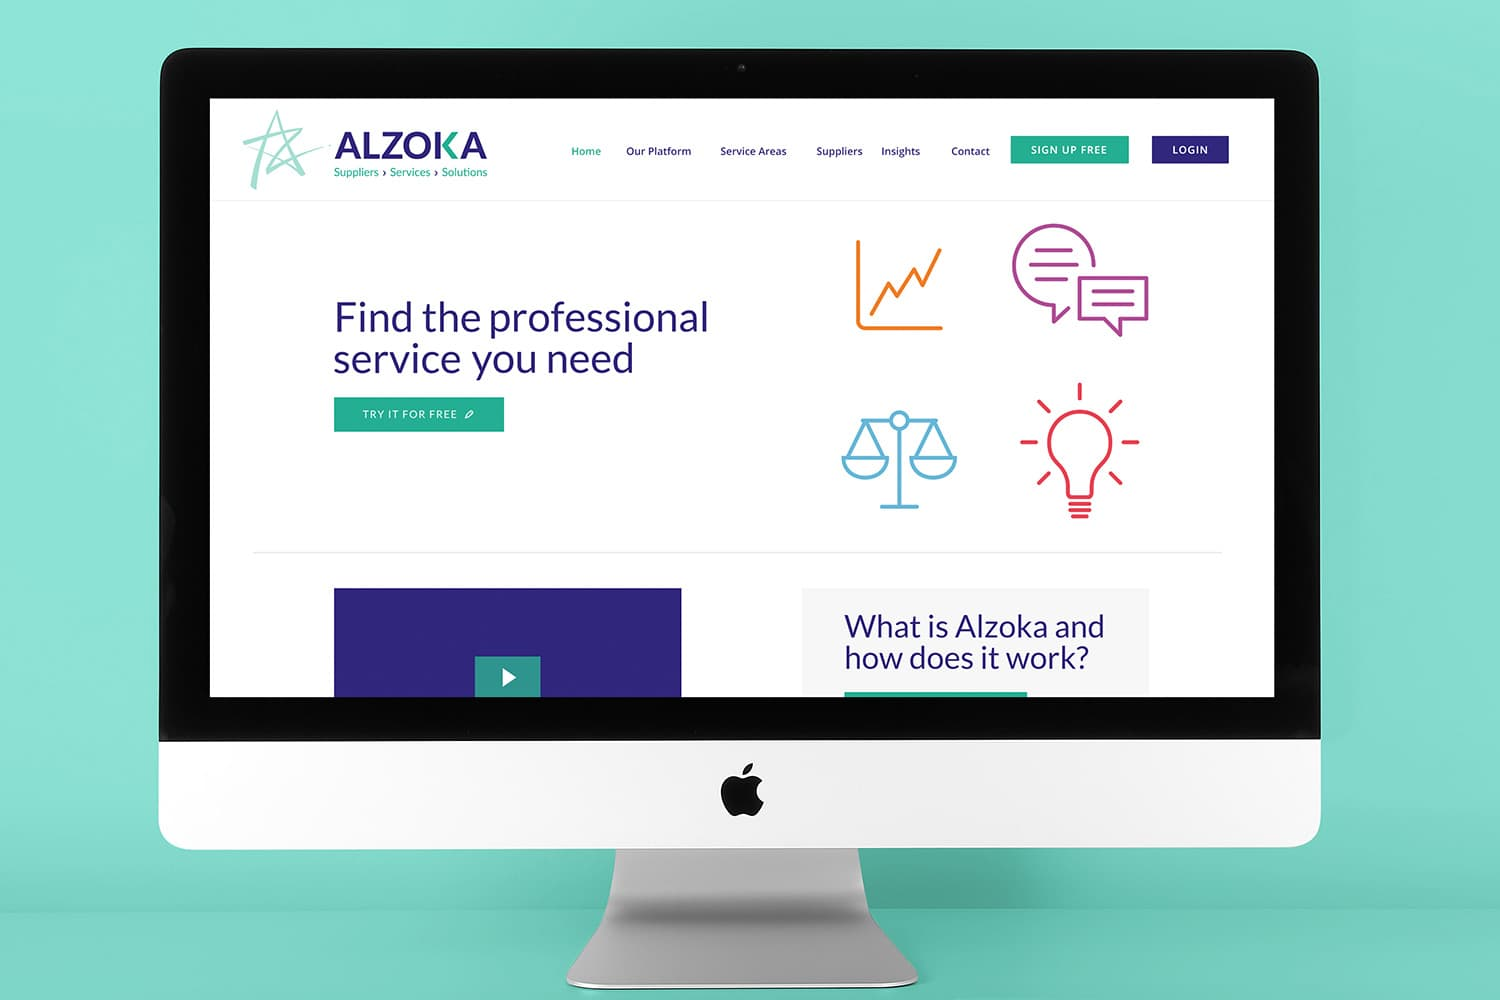 Desktop displaying the new Alzoka website design